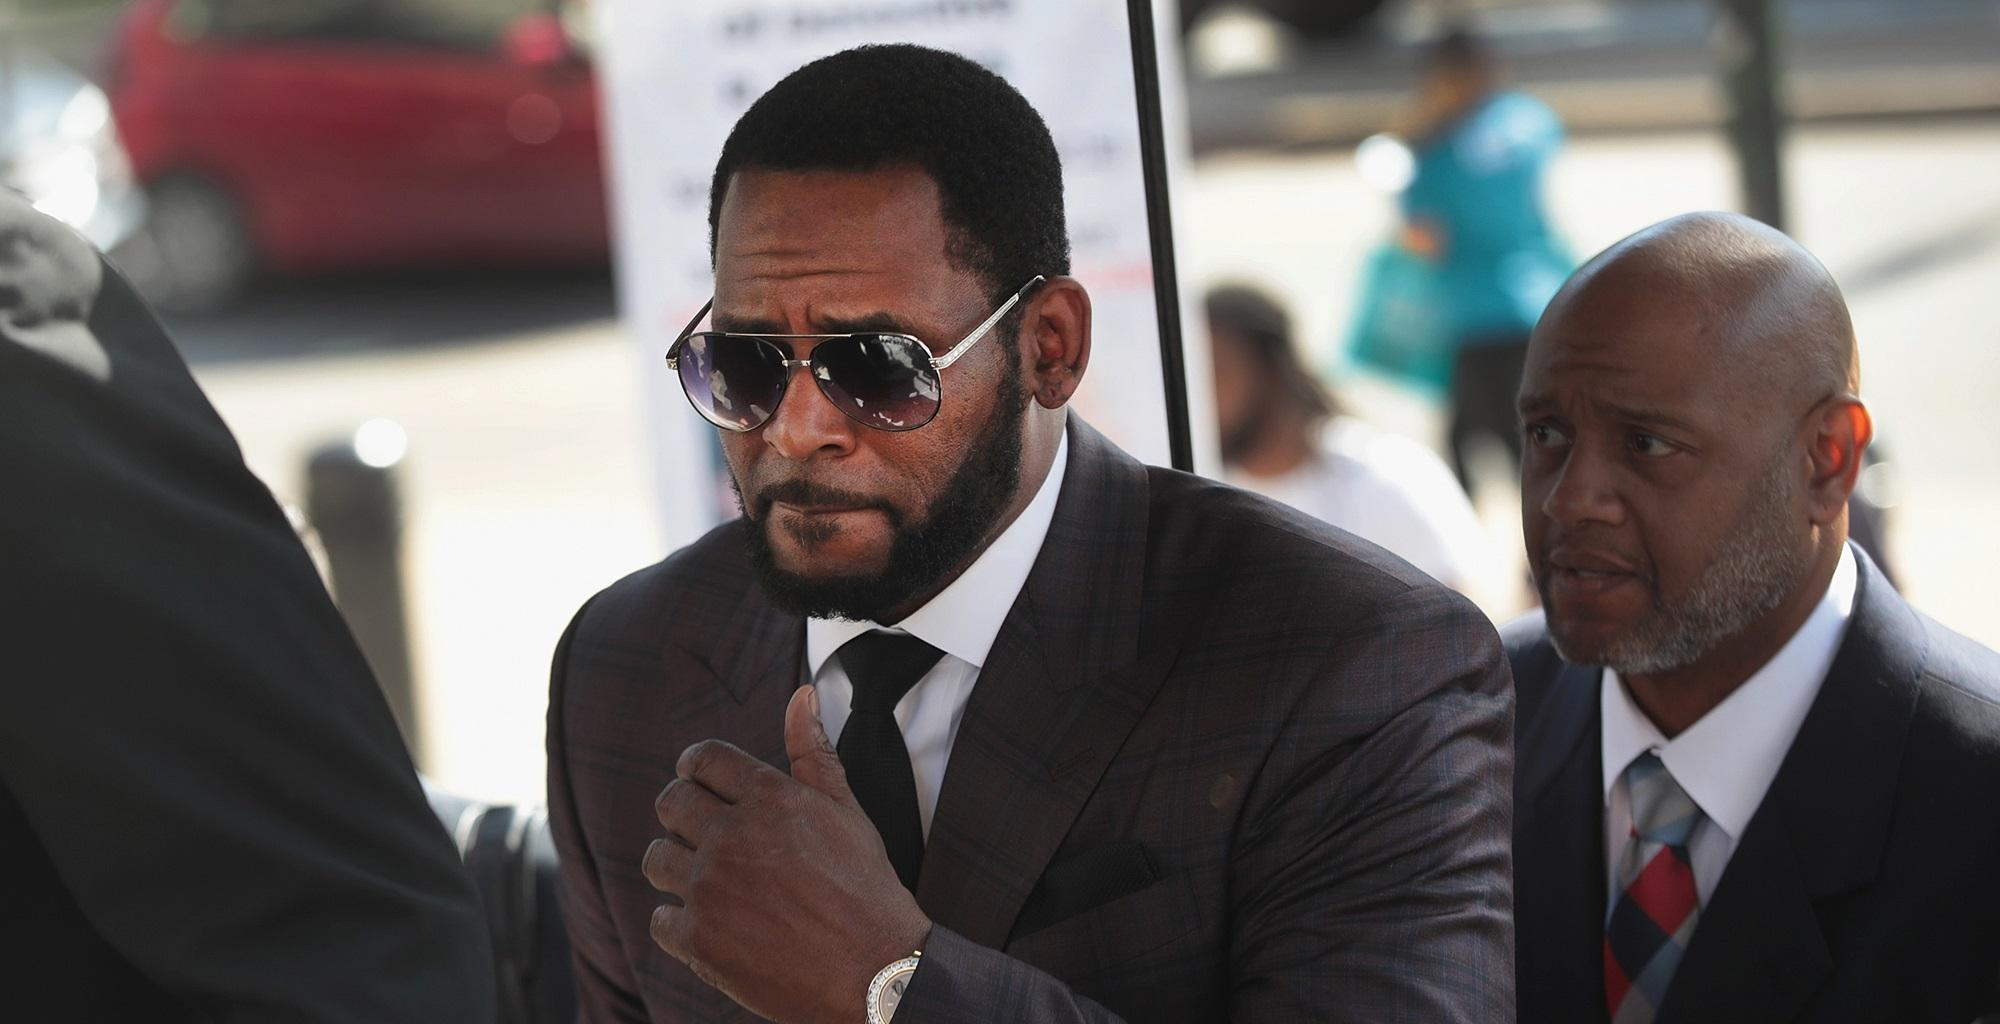 R. Kelly Is Set To Have A Busy 2020, It Will Either Be The Best Or Worst Year Of His Life